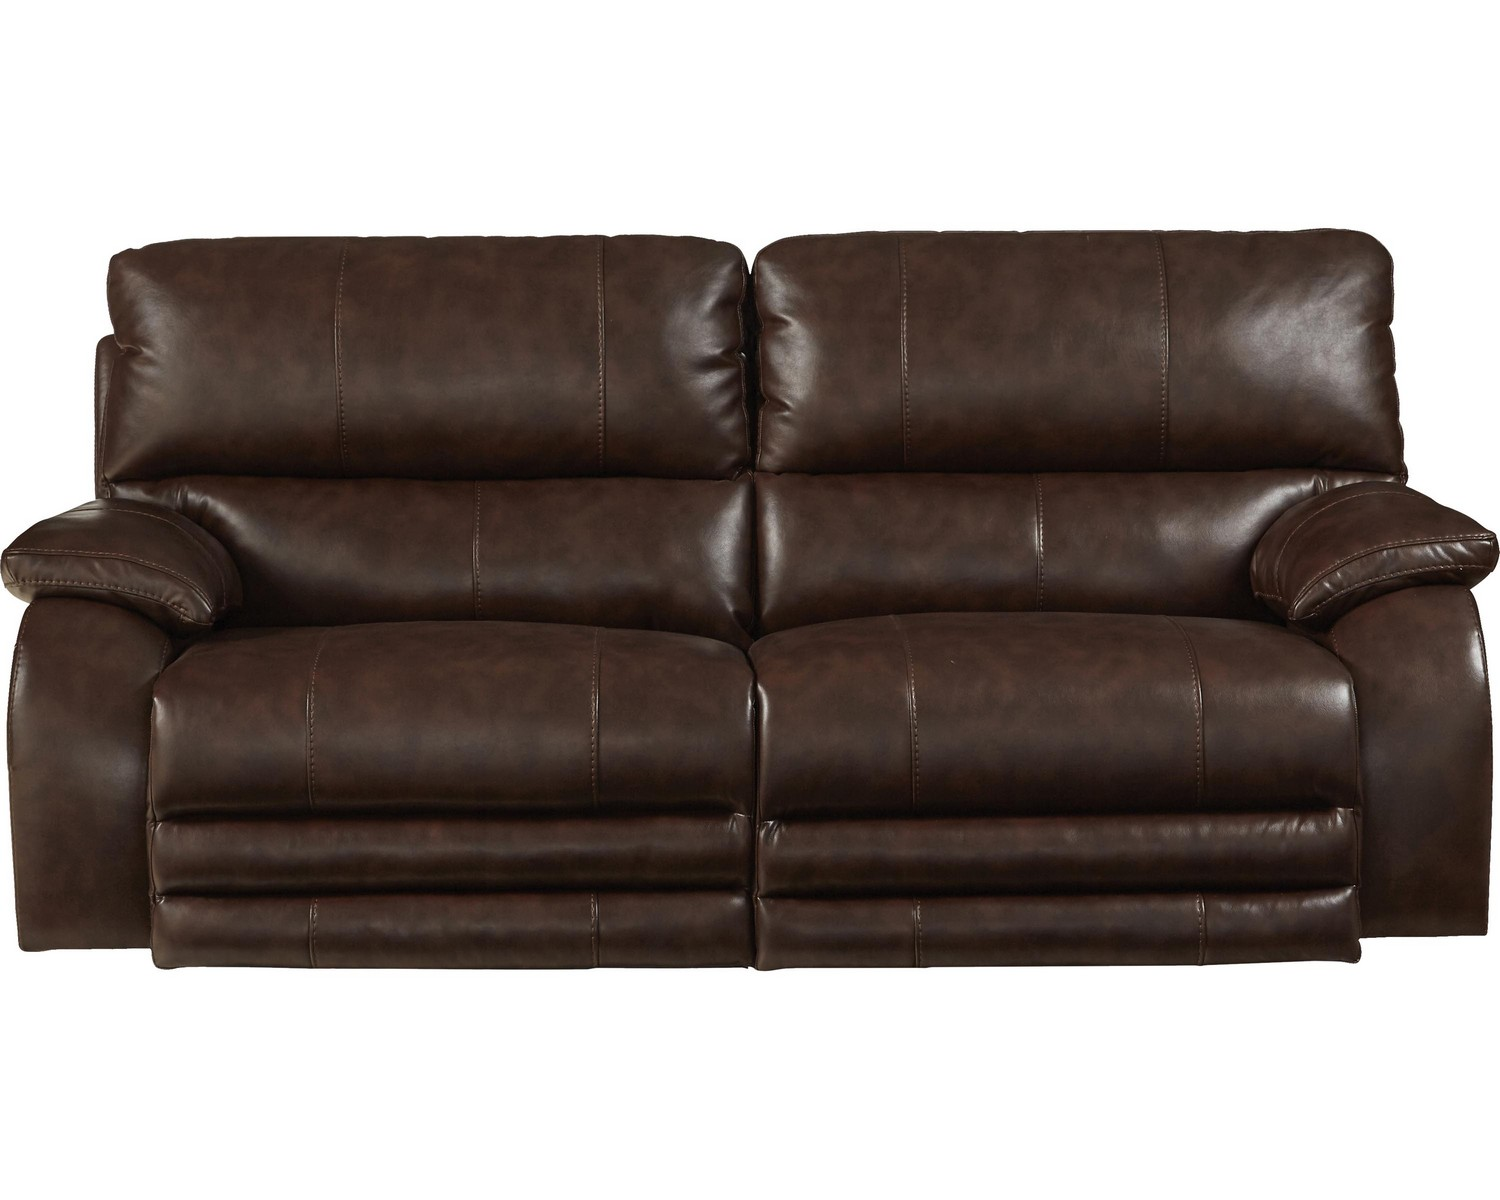 Catnapper sheridan power headrest power lay flat reclining sofa java cn 64271 java at Catnapper loveseat recliner